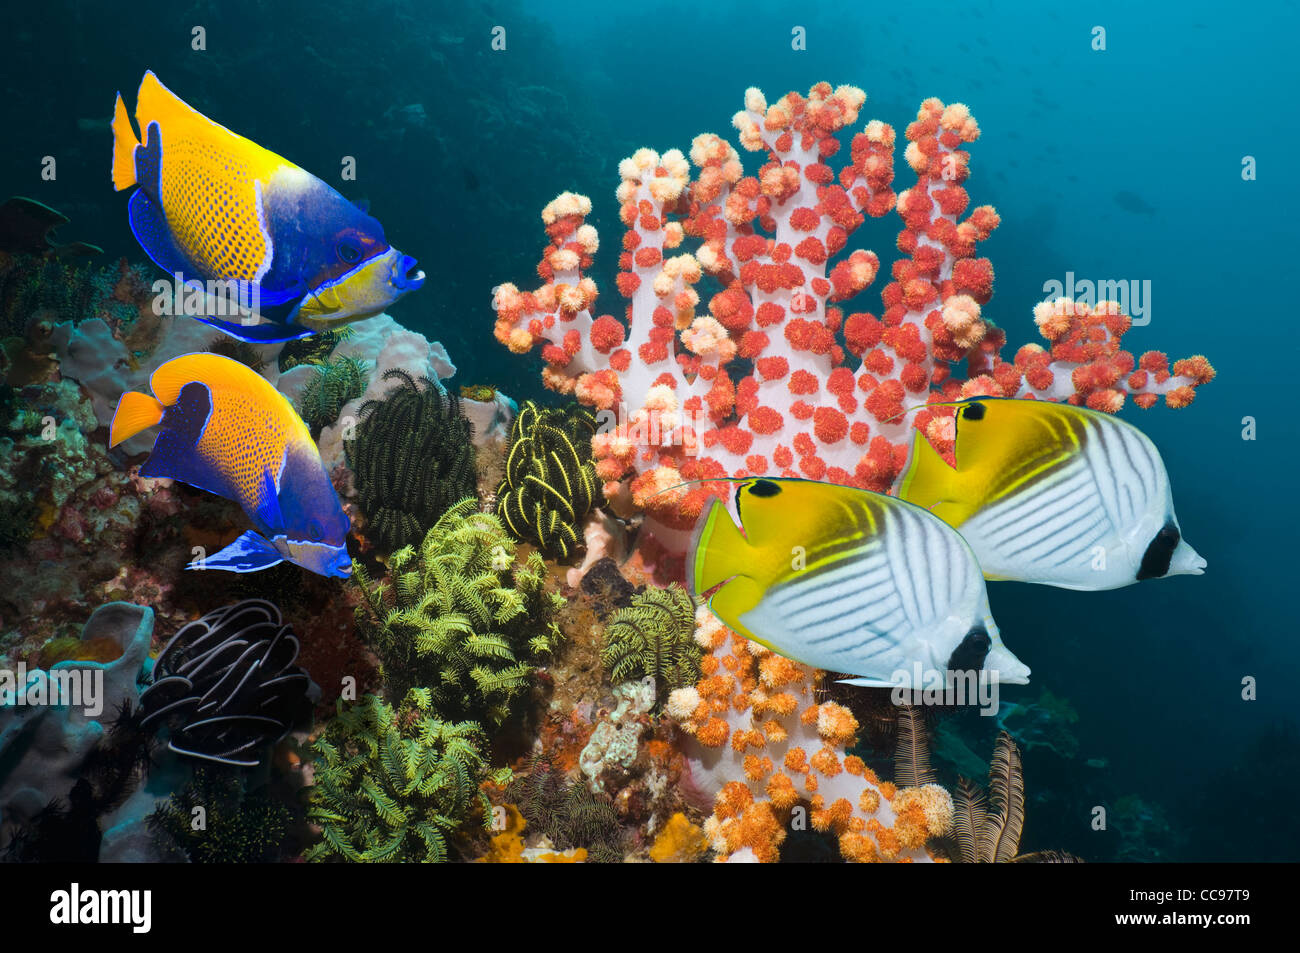 Coral reef scenery with Blue-girdled angelfish and Threadfin butterflyfish  Komodo National Park Indonesia - Stock Image